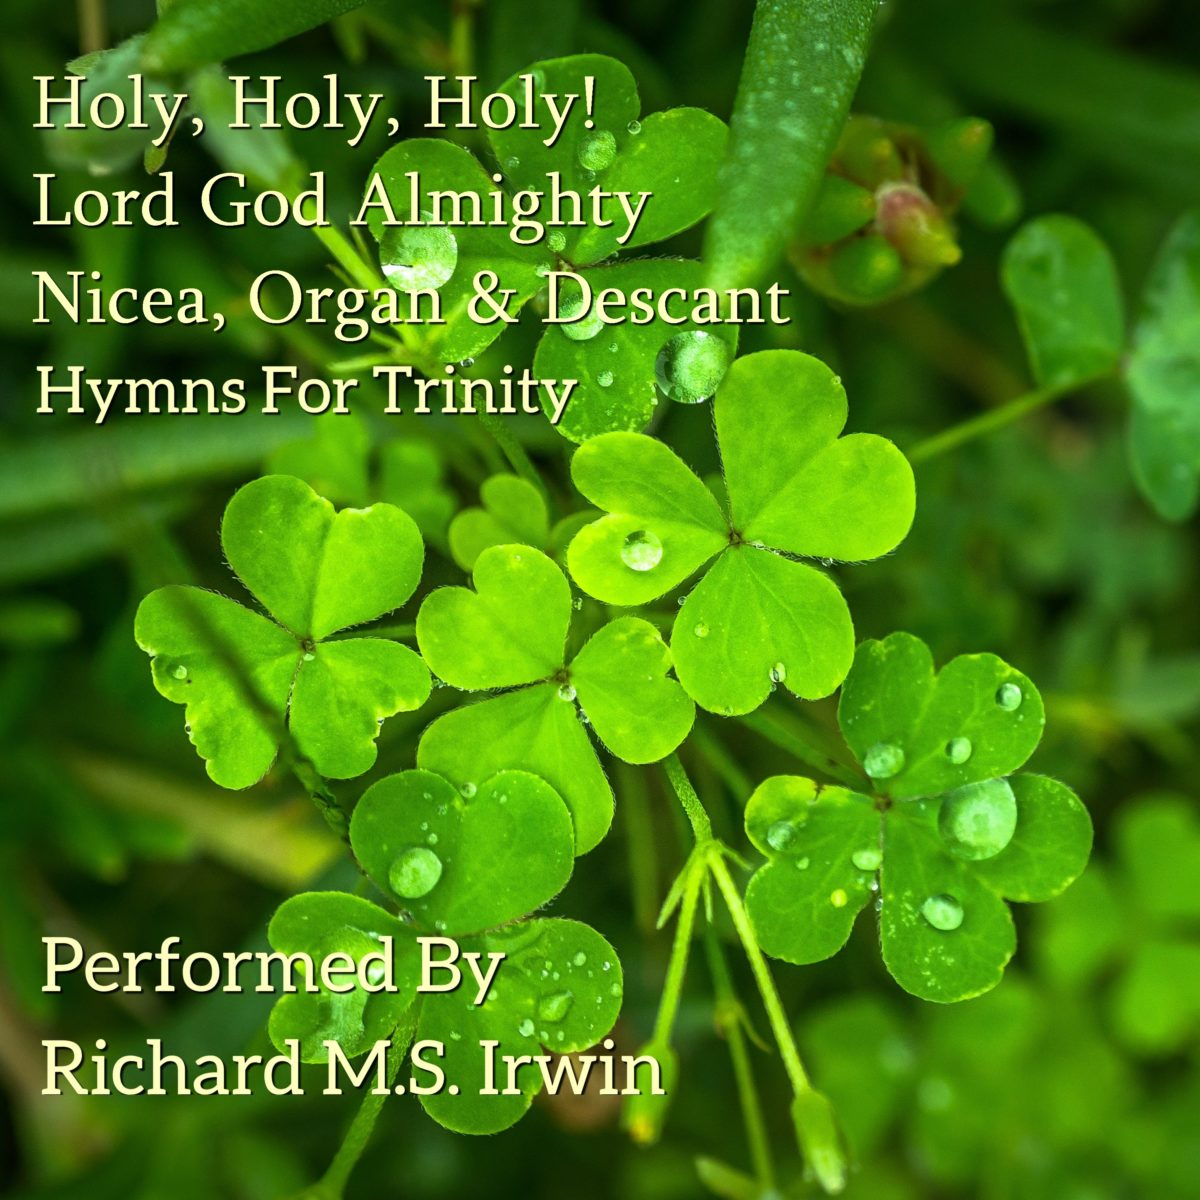 Holy, Holy, Holy! Lord God Almighty (Nicea, Organ And Trumpet, 4 Verses)